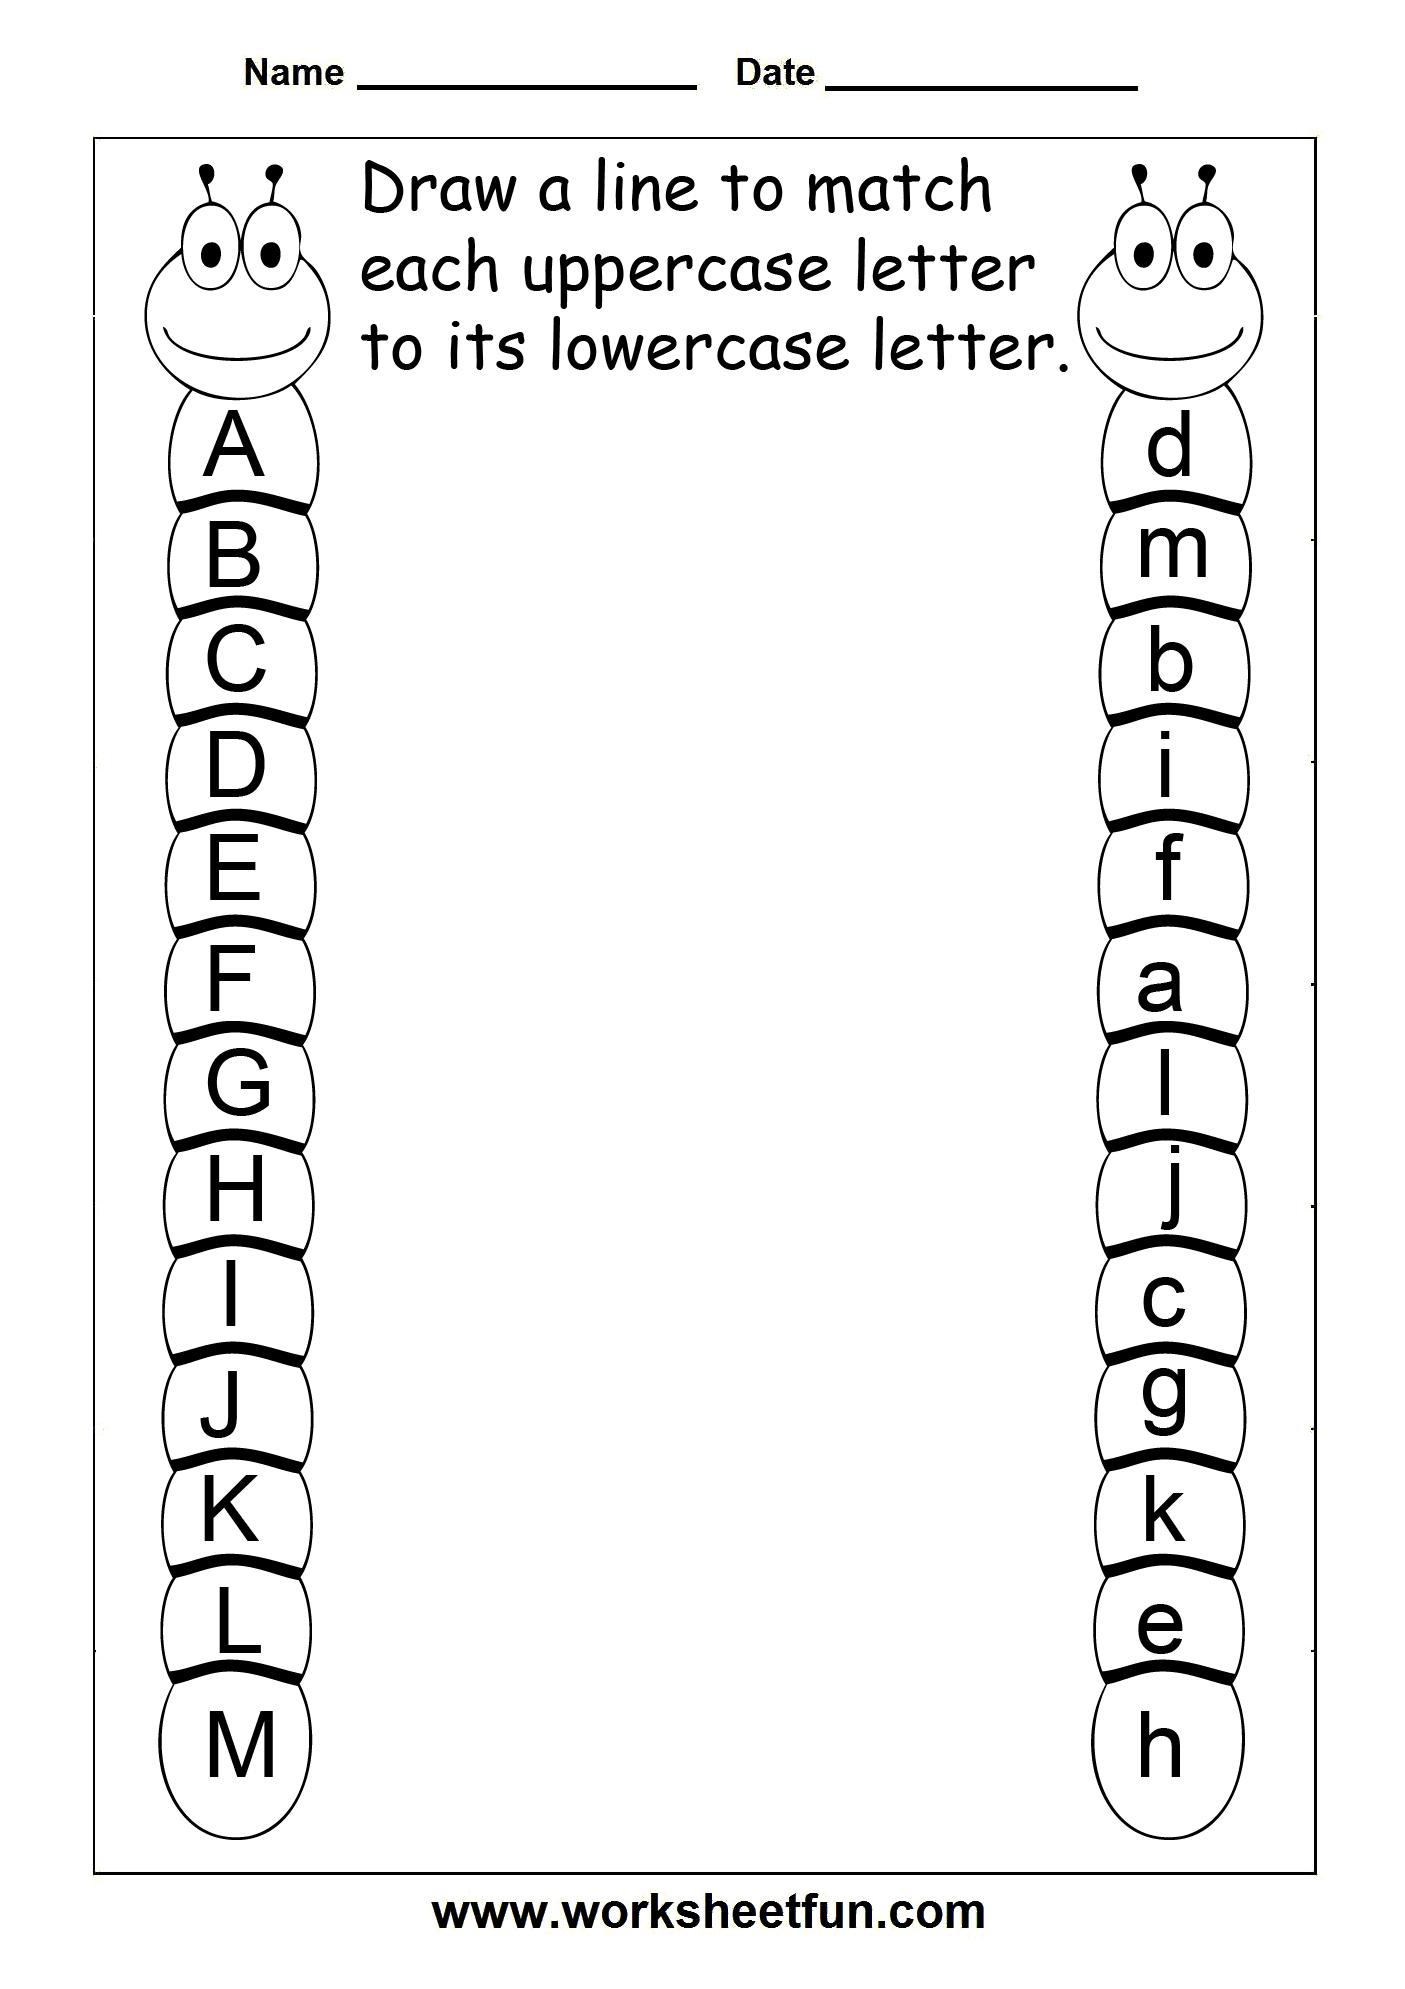 Weirdmailus  Winsome  Images About Work Worksheet On Pinterest  Hidden Pictures  With Hot  Images About Work Worksheet On Pinterest  Hidden Pictures Color By Numbers And Puzzles With Breathtaking Number Line Worksheets Free Also Esl Clothing Worksheets In Addition Maths Worksheets For Class  And  Plagues Of Egypt Worksheet As Well As Linear Equation Worksheets With Answers Additionally Grammar Worksheets Third Grade From Pinterestcom With Weirdmailus  Hot  Images About Work Worksheet On Pinterest  Hidden Pictures  With Breathtaking  Images About Work Worksheet On Pinterest  Hidden Pictures Color By Numbers And Puzzles And Winsome Number Line Worksheets Free Also Esl Clothing Worksheets In Addition Maths Worksheets For Class  From Pinterestcom